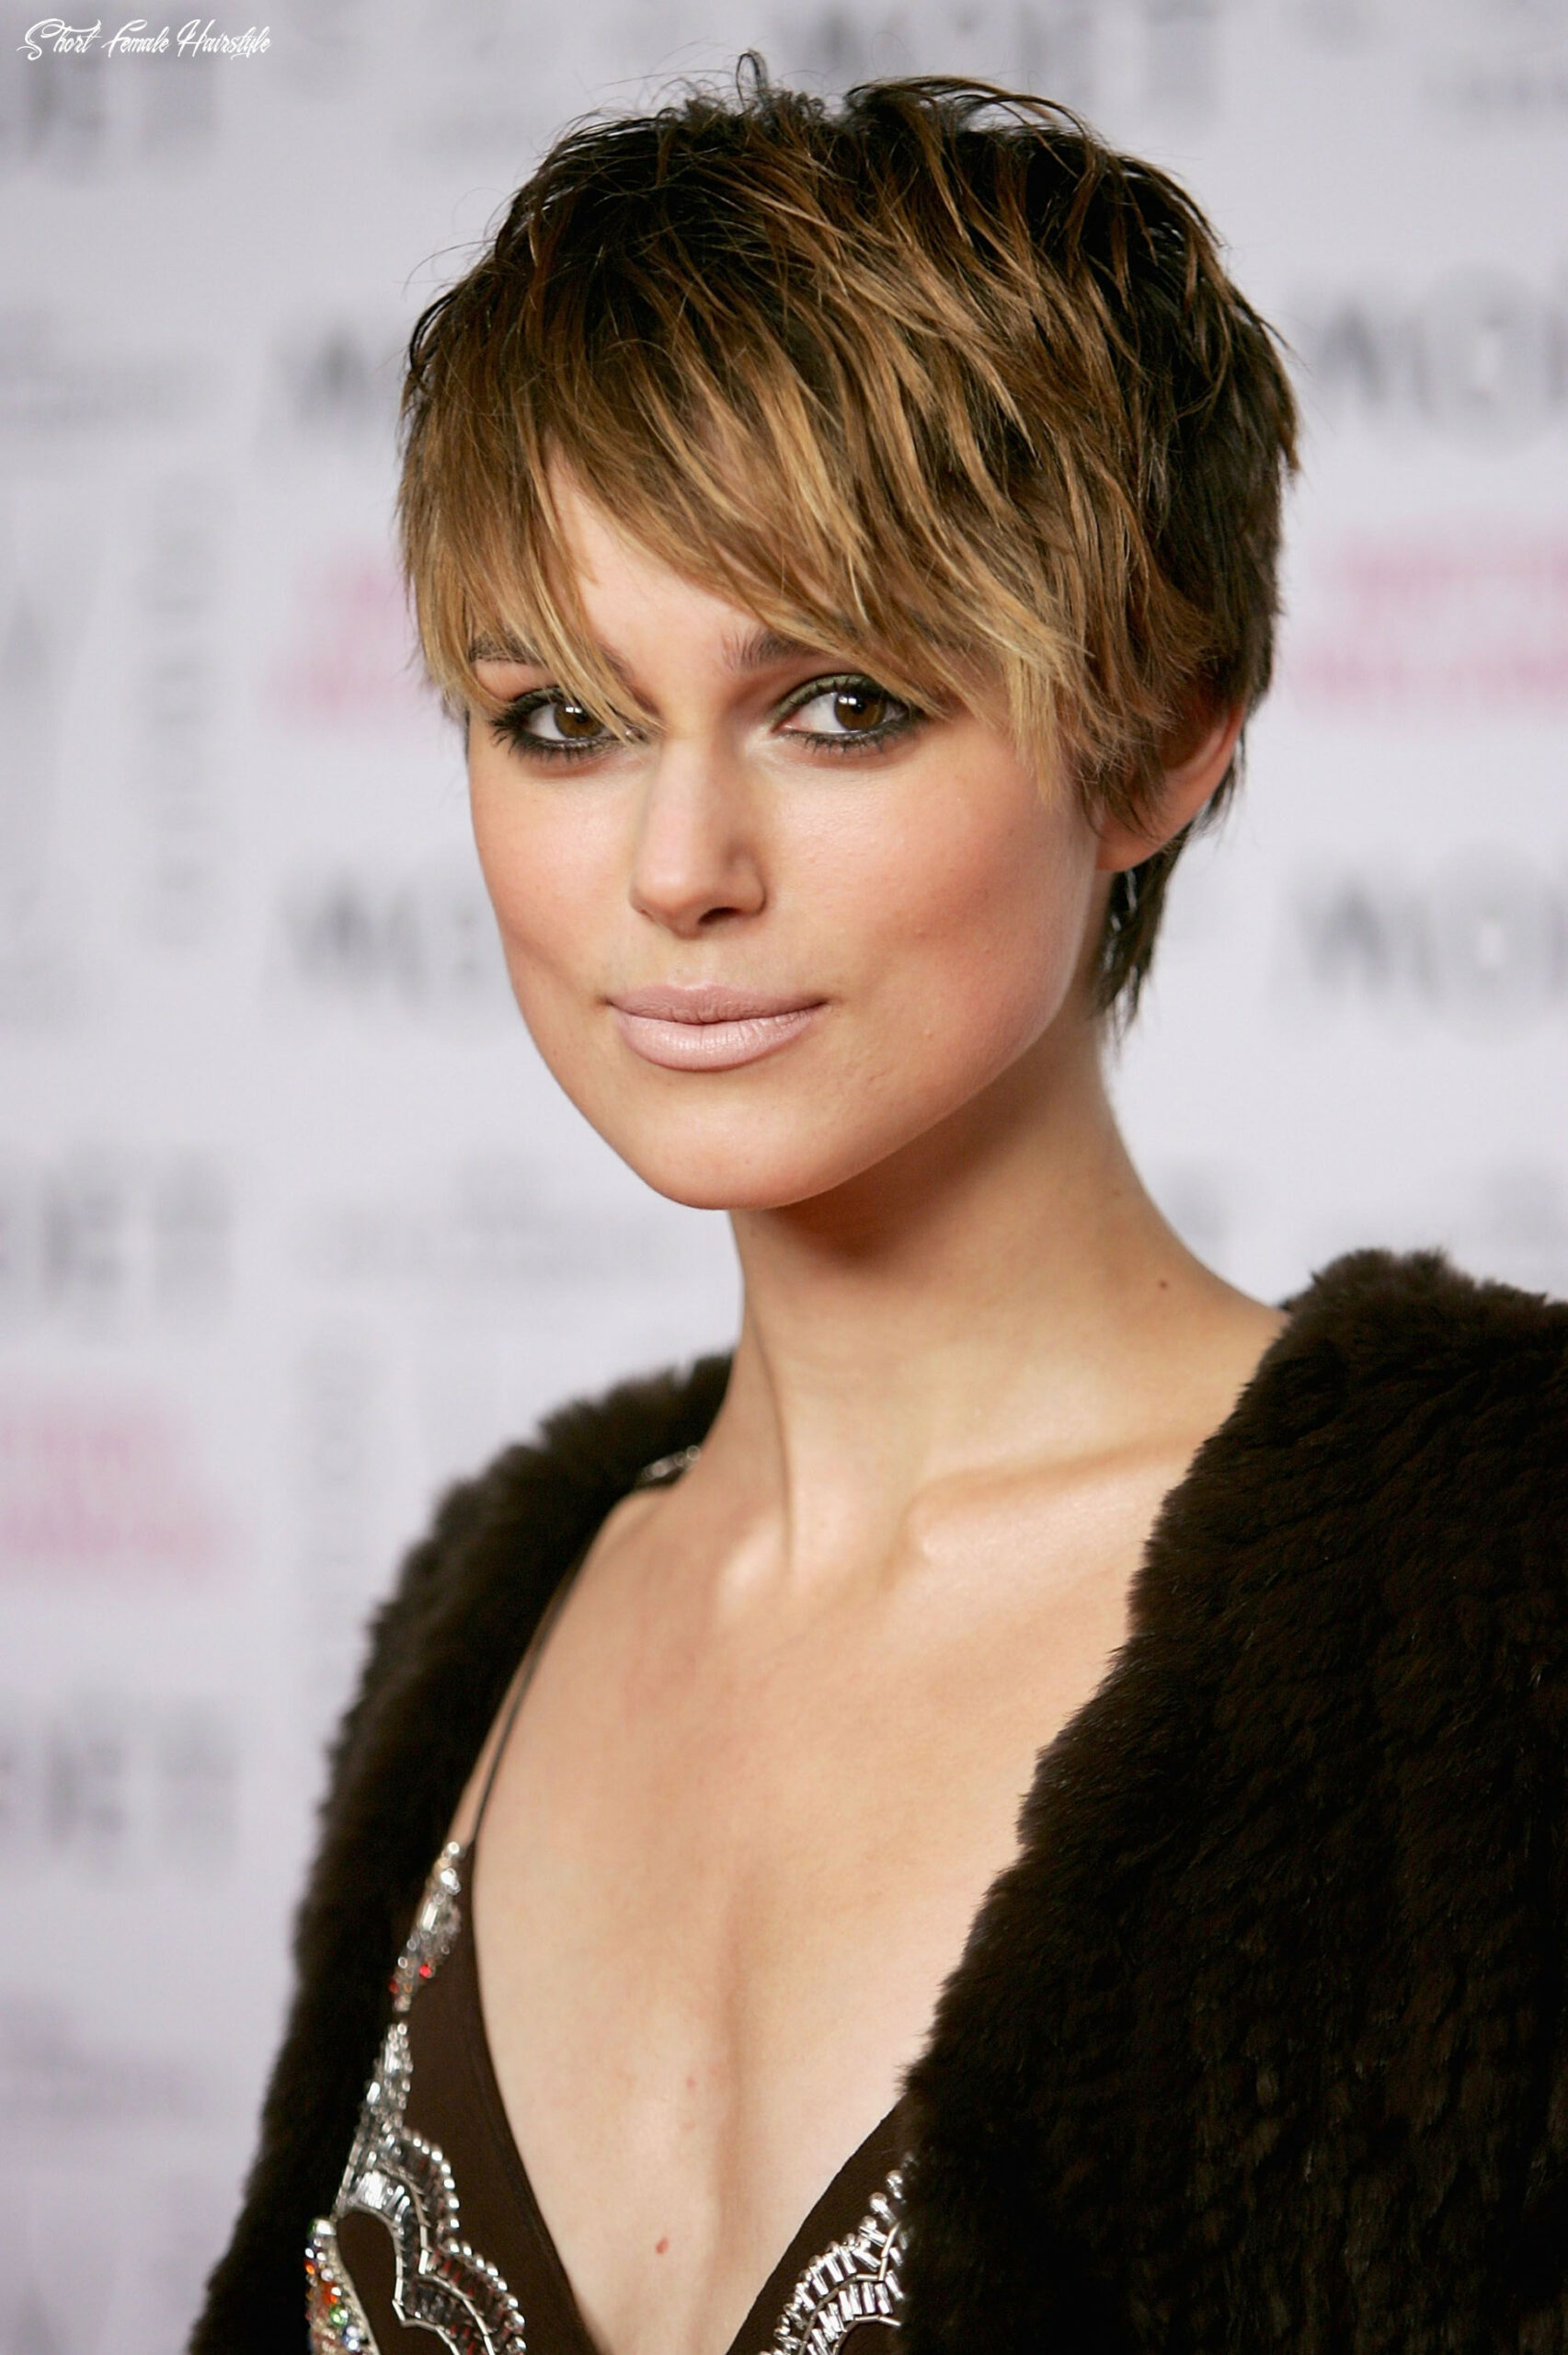 10 best short hairstyles, haircuts & short hair ideas for 10 short female hairstyle